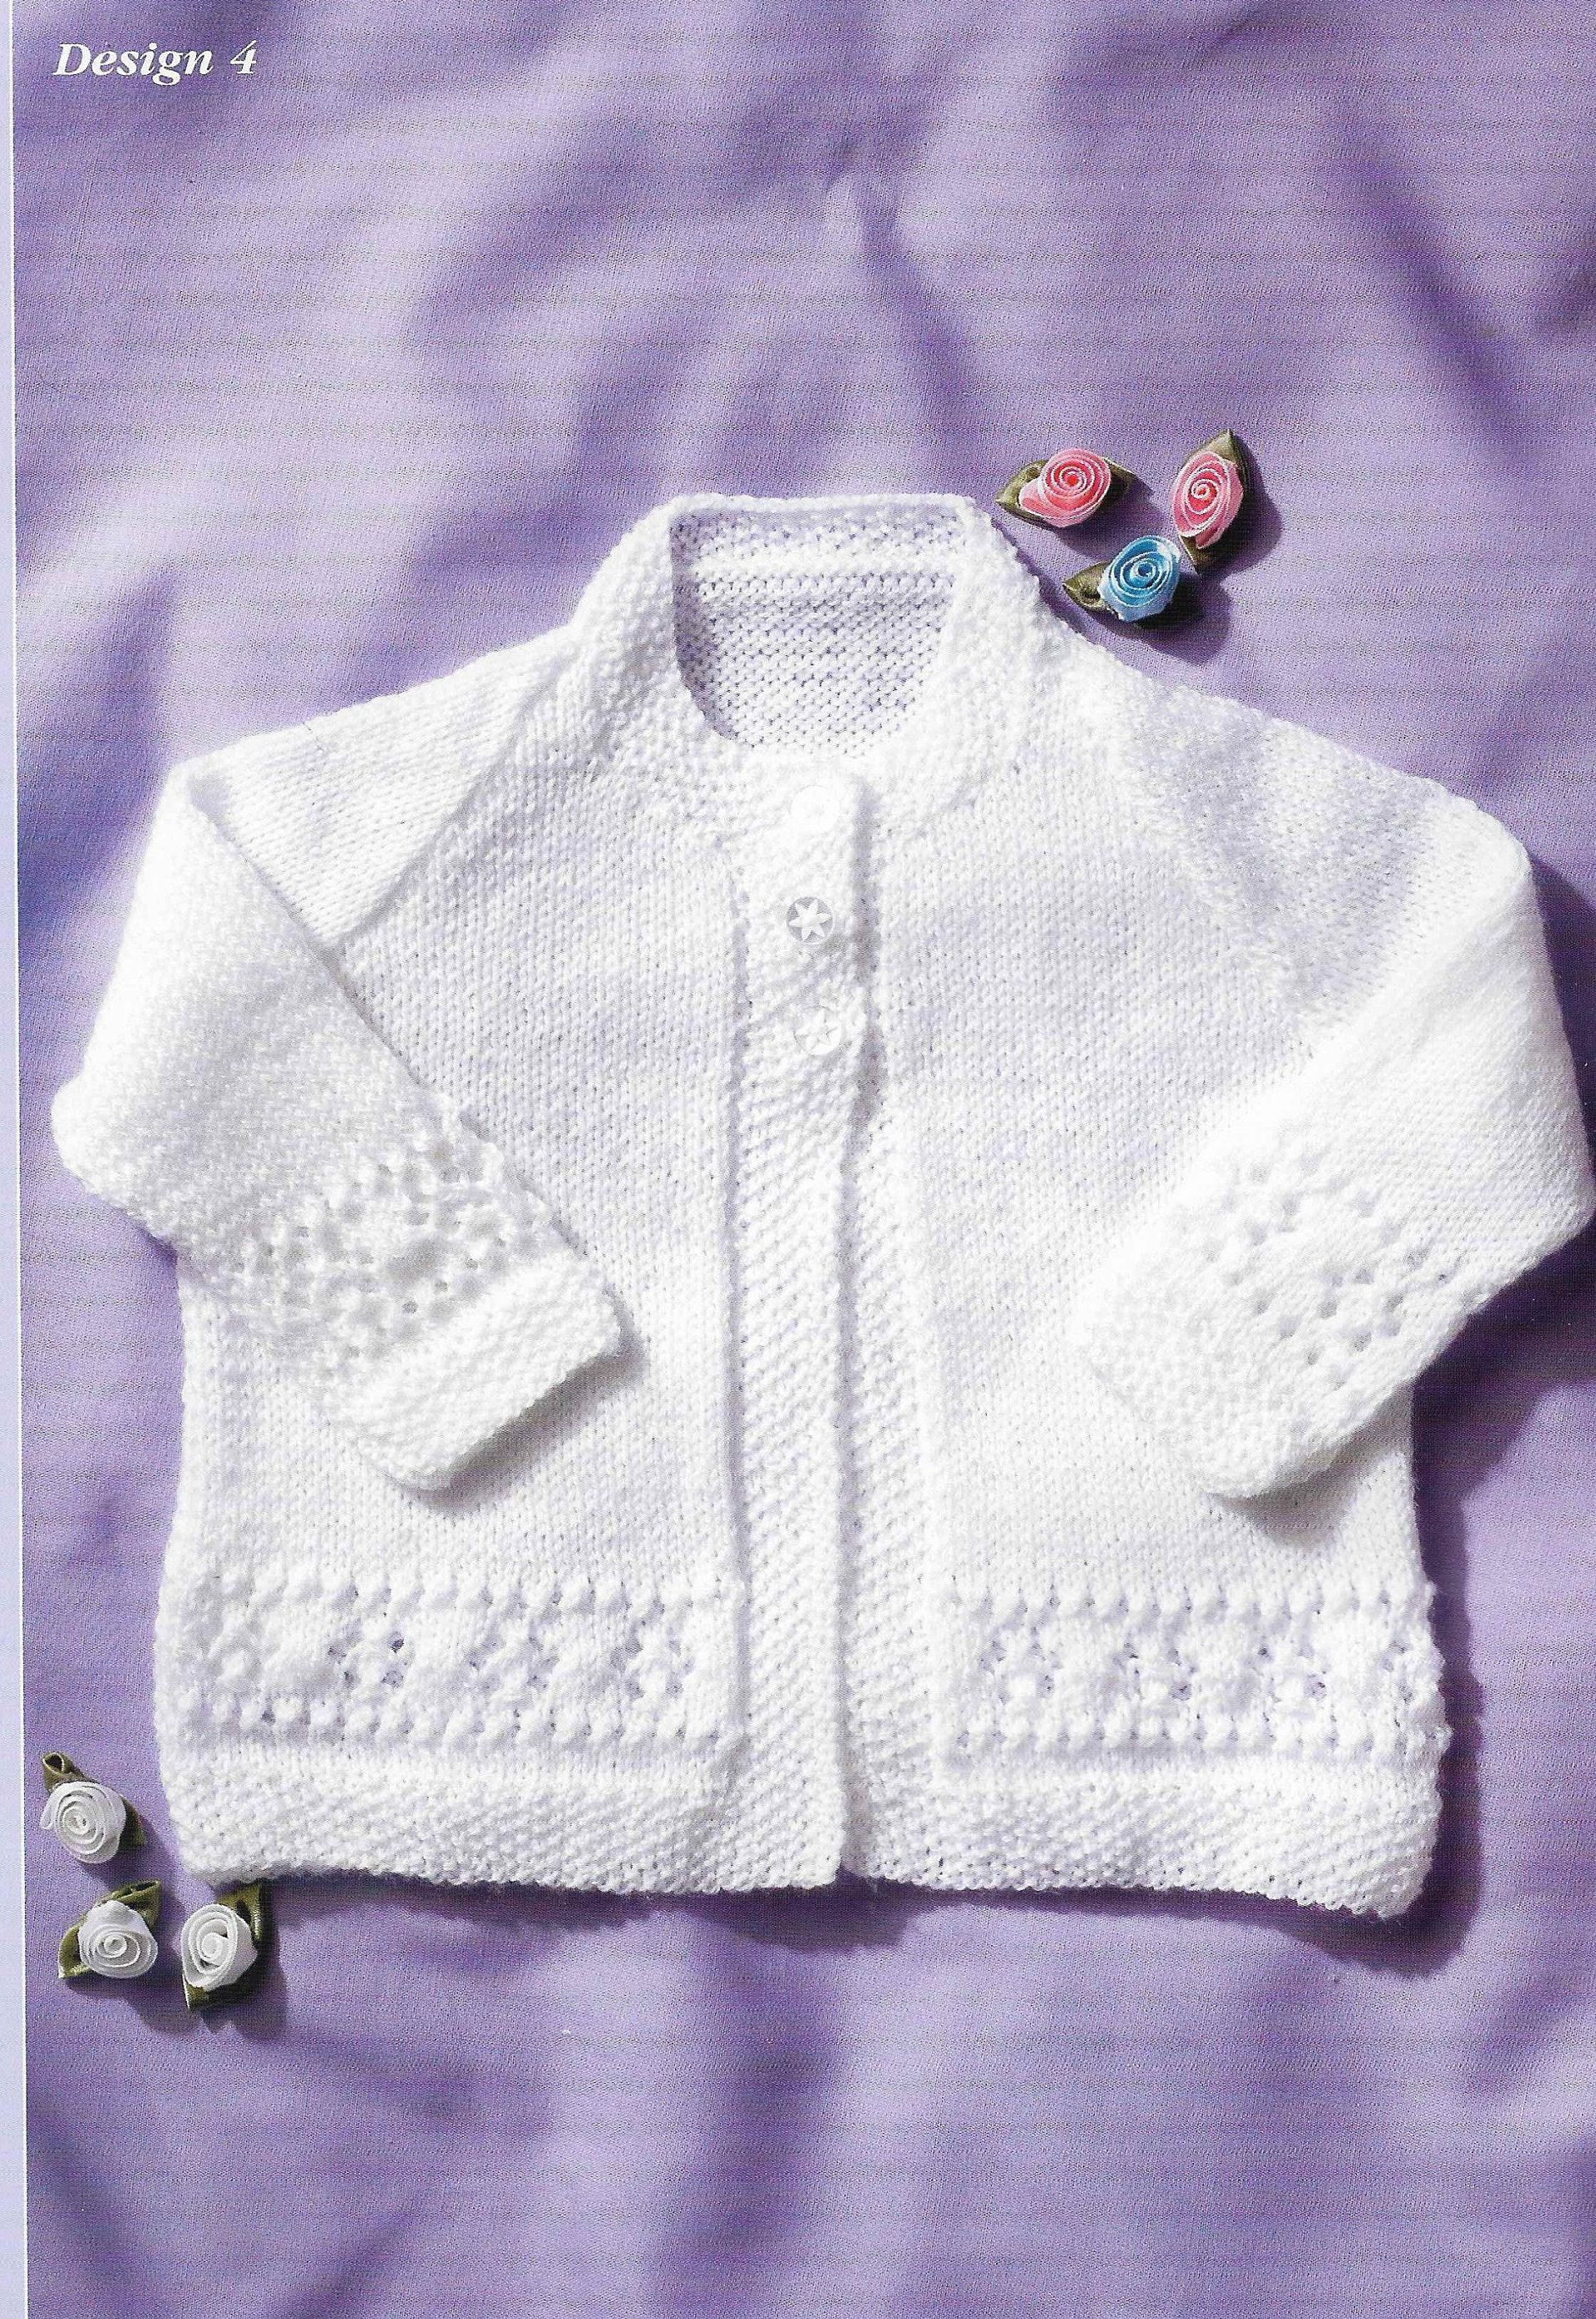 KNITTING PATTERN FOR BABY/'S CARDIGANS X 4 DESIGNS.Premature to 2 years.